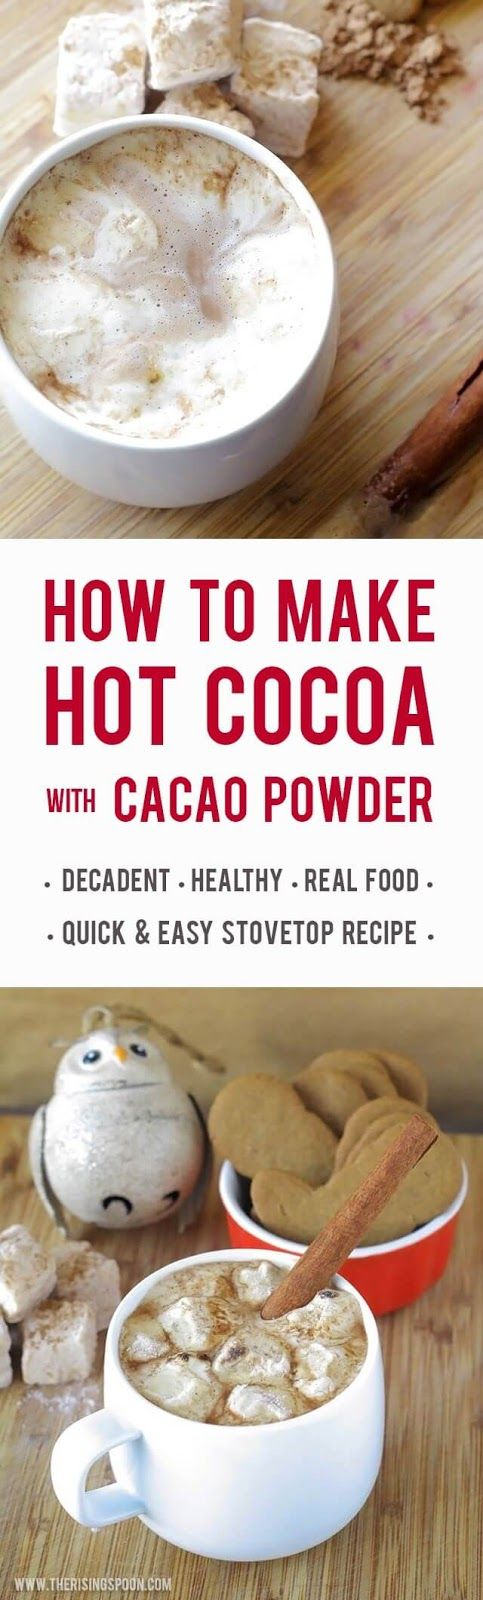 Learn how to make a decadent & healthy hot cocoa recipe on your stove-top in minutes using cacao powder (or unsweetened cocoa powder), cinnamon powder, cayenne pepper, sea salt, and your favorite sweetener + milk (dairy or dairy-free). Once you make homemade hot chocolate you'll never want to use the store mixes again. | real food recipe | vegan | paleo | gluten-free | dairy-free |